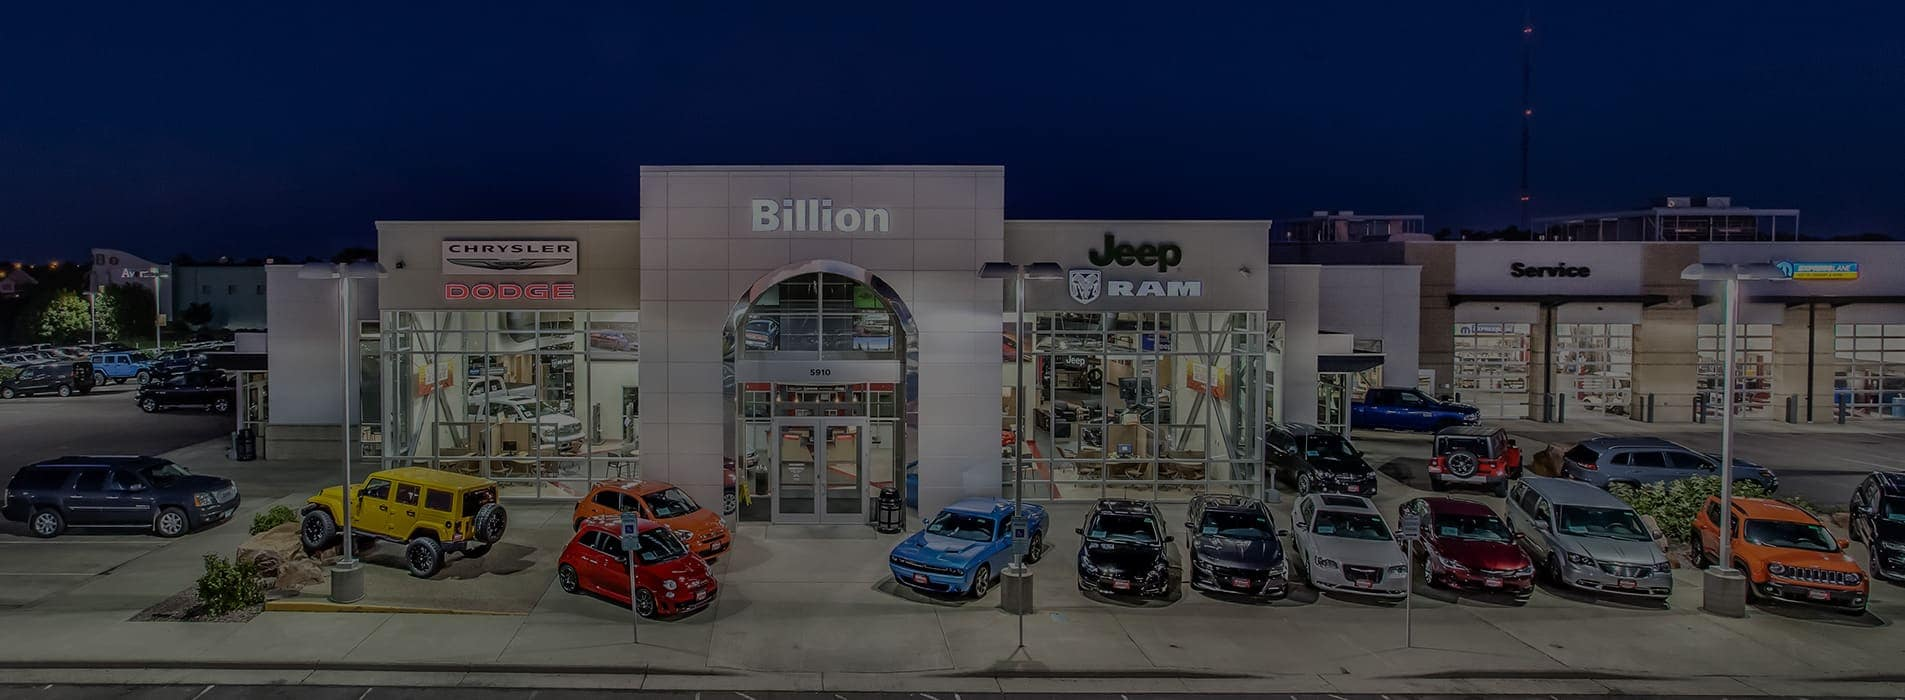 The front of the Billion Chrysler Jeep Dodge Ram FIAT dealership at night